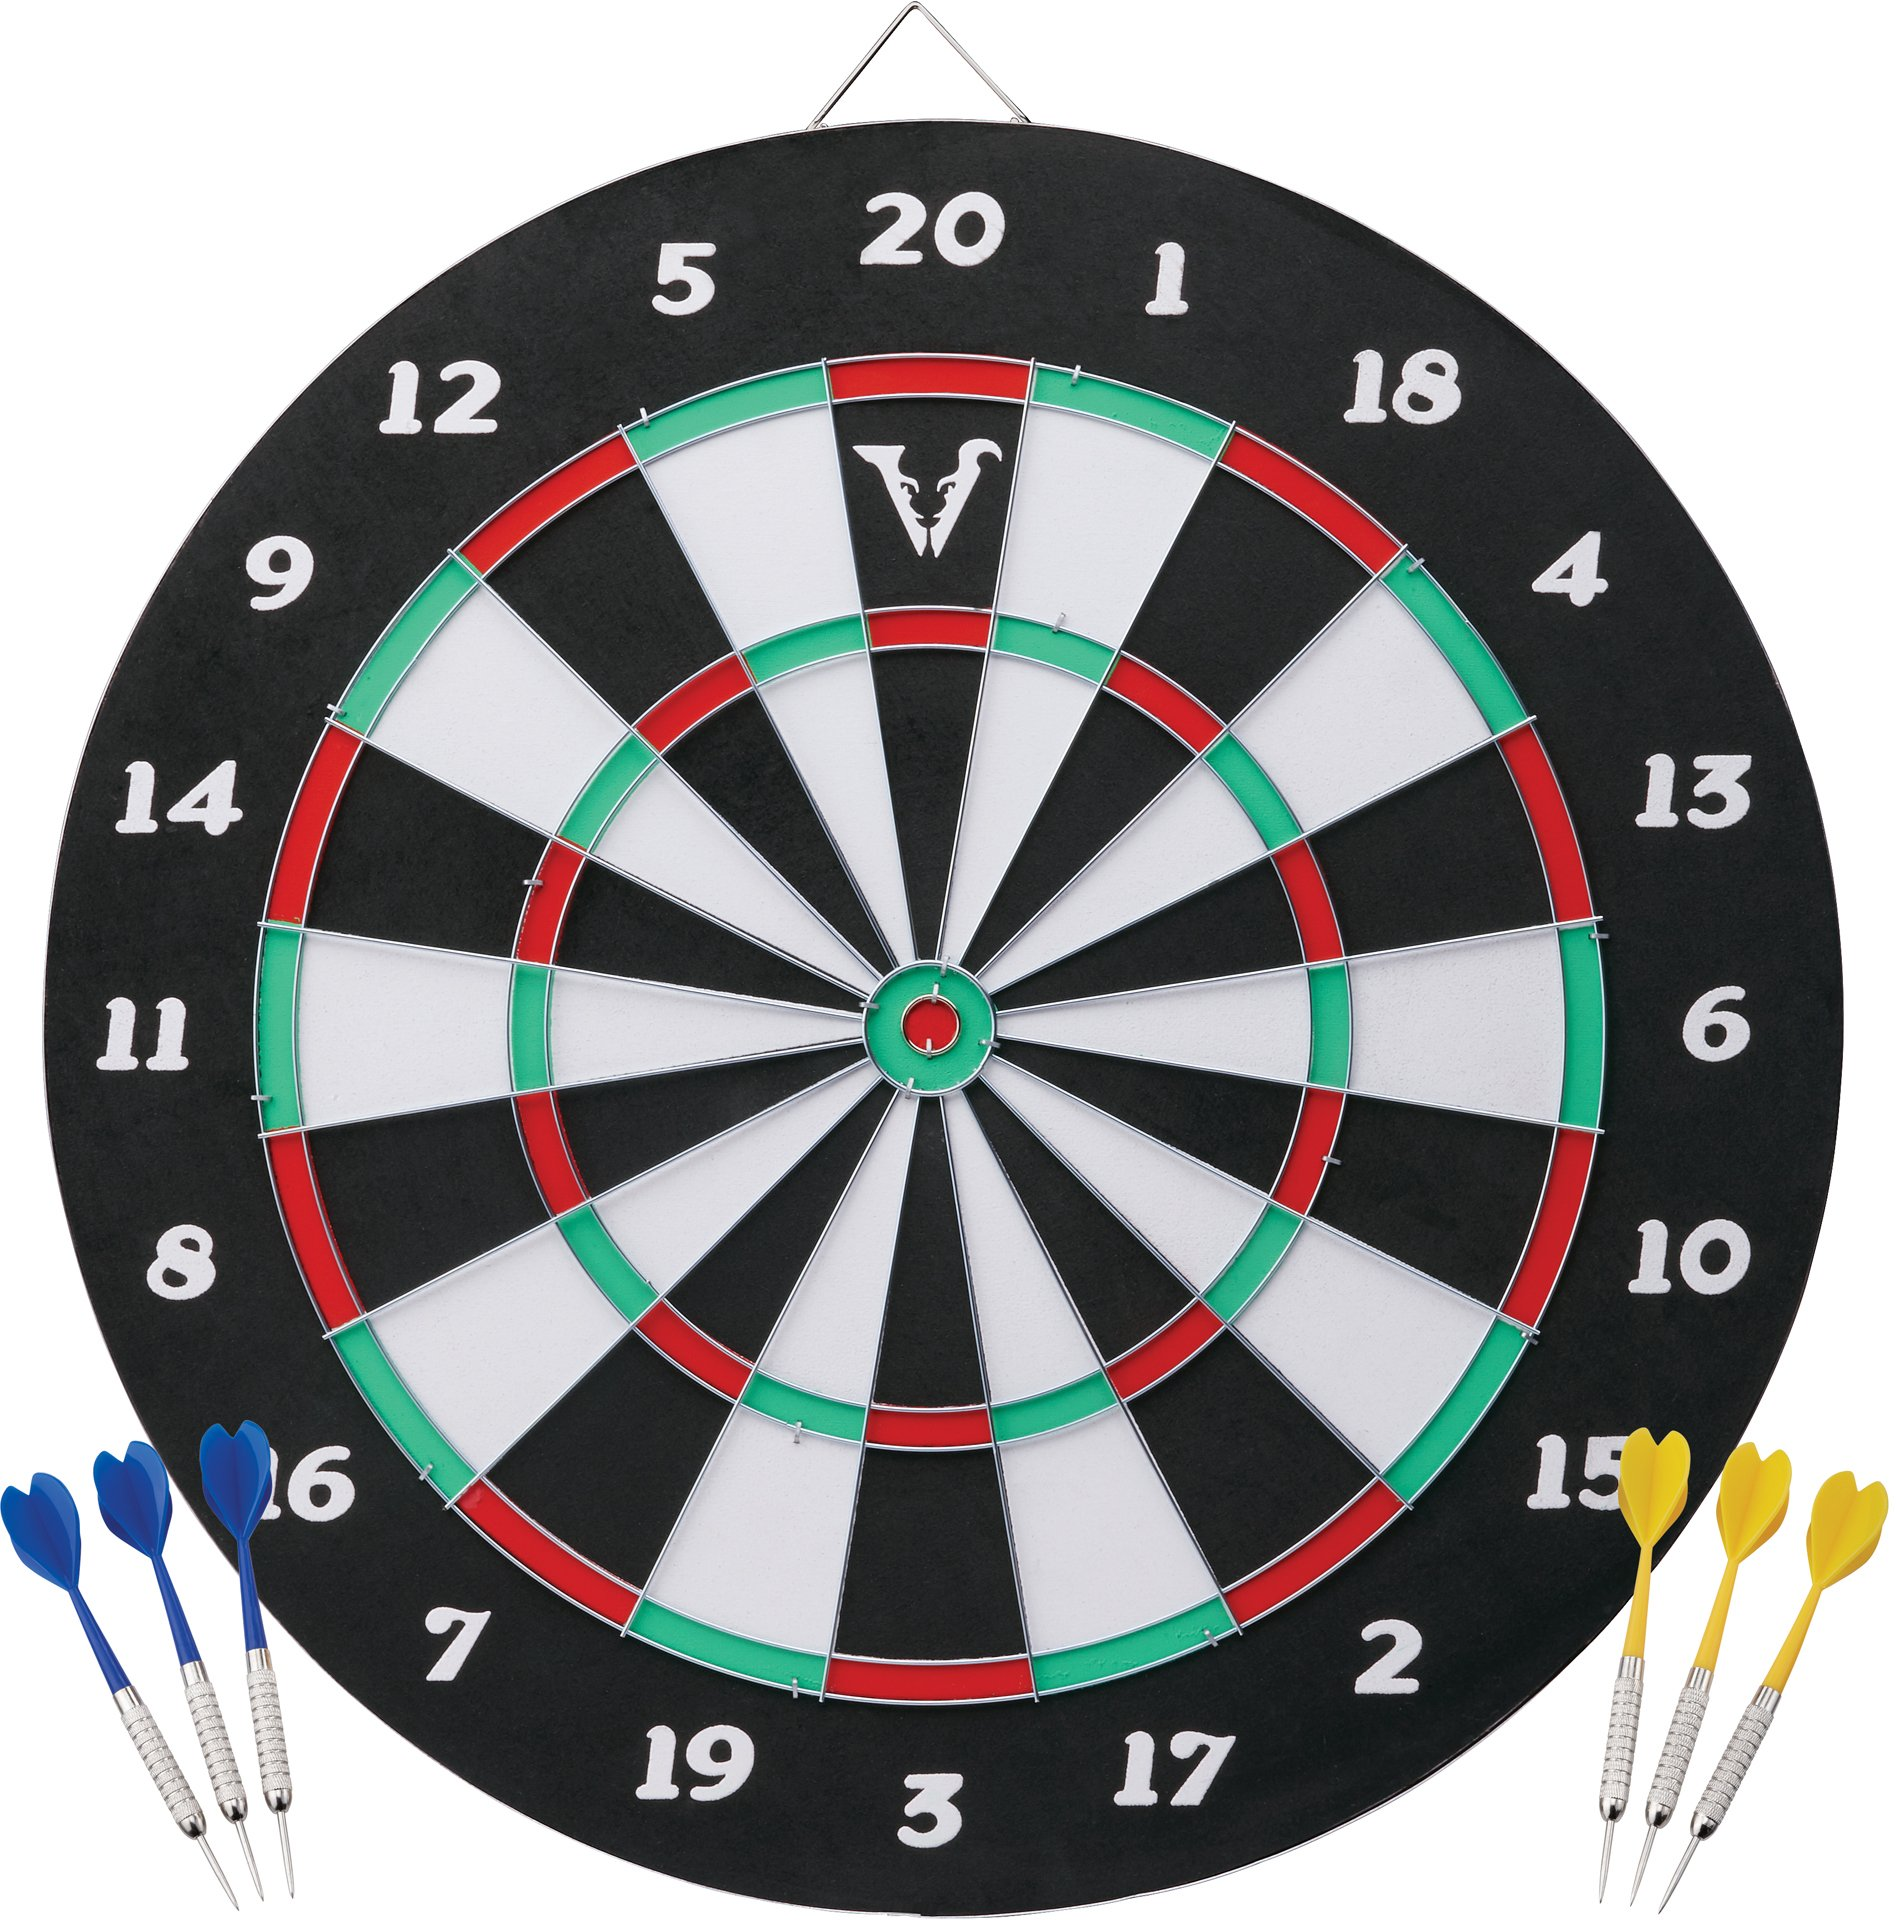 Viper Double Play 2-in-1 Baseball Dartboard with Darts by Viper by GLD Products